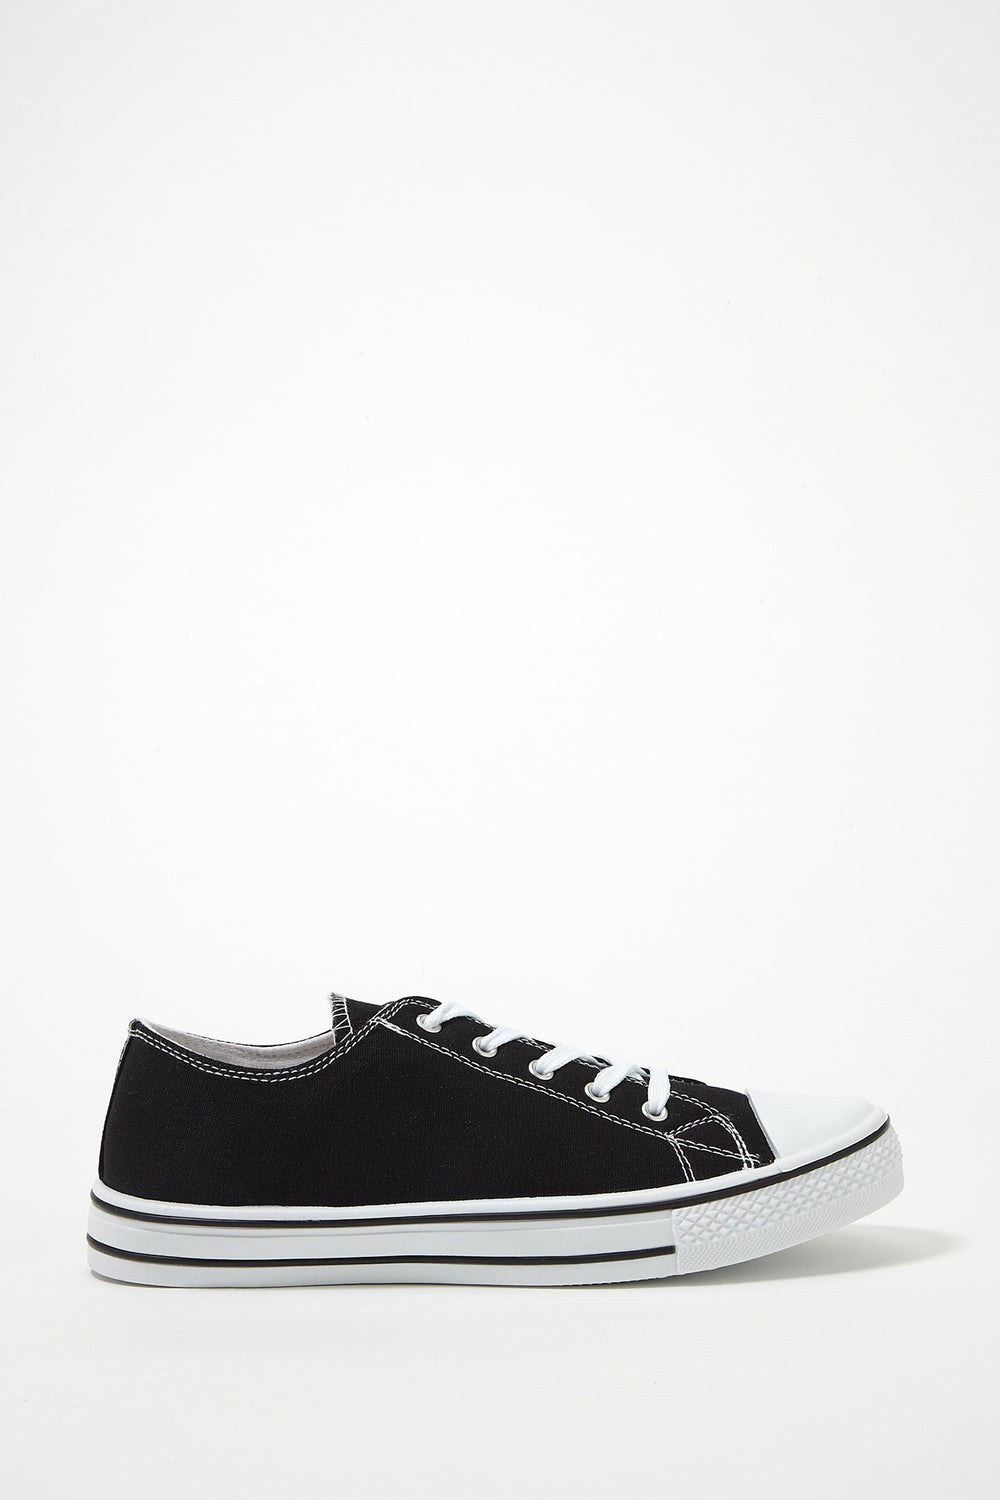 Printed Canvas Lace-Up Sneaker Black